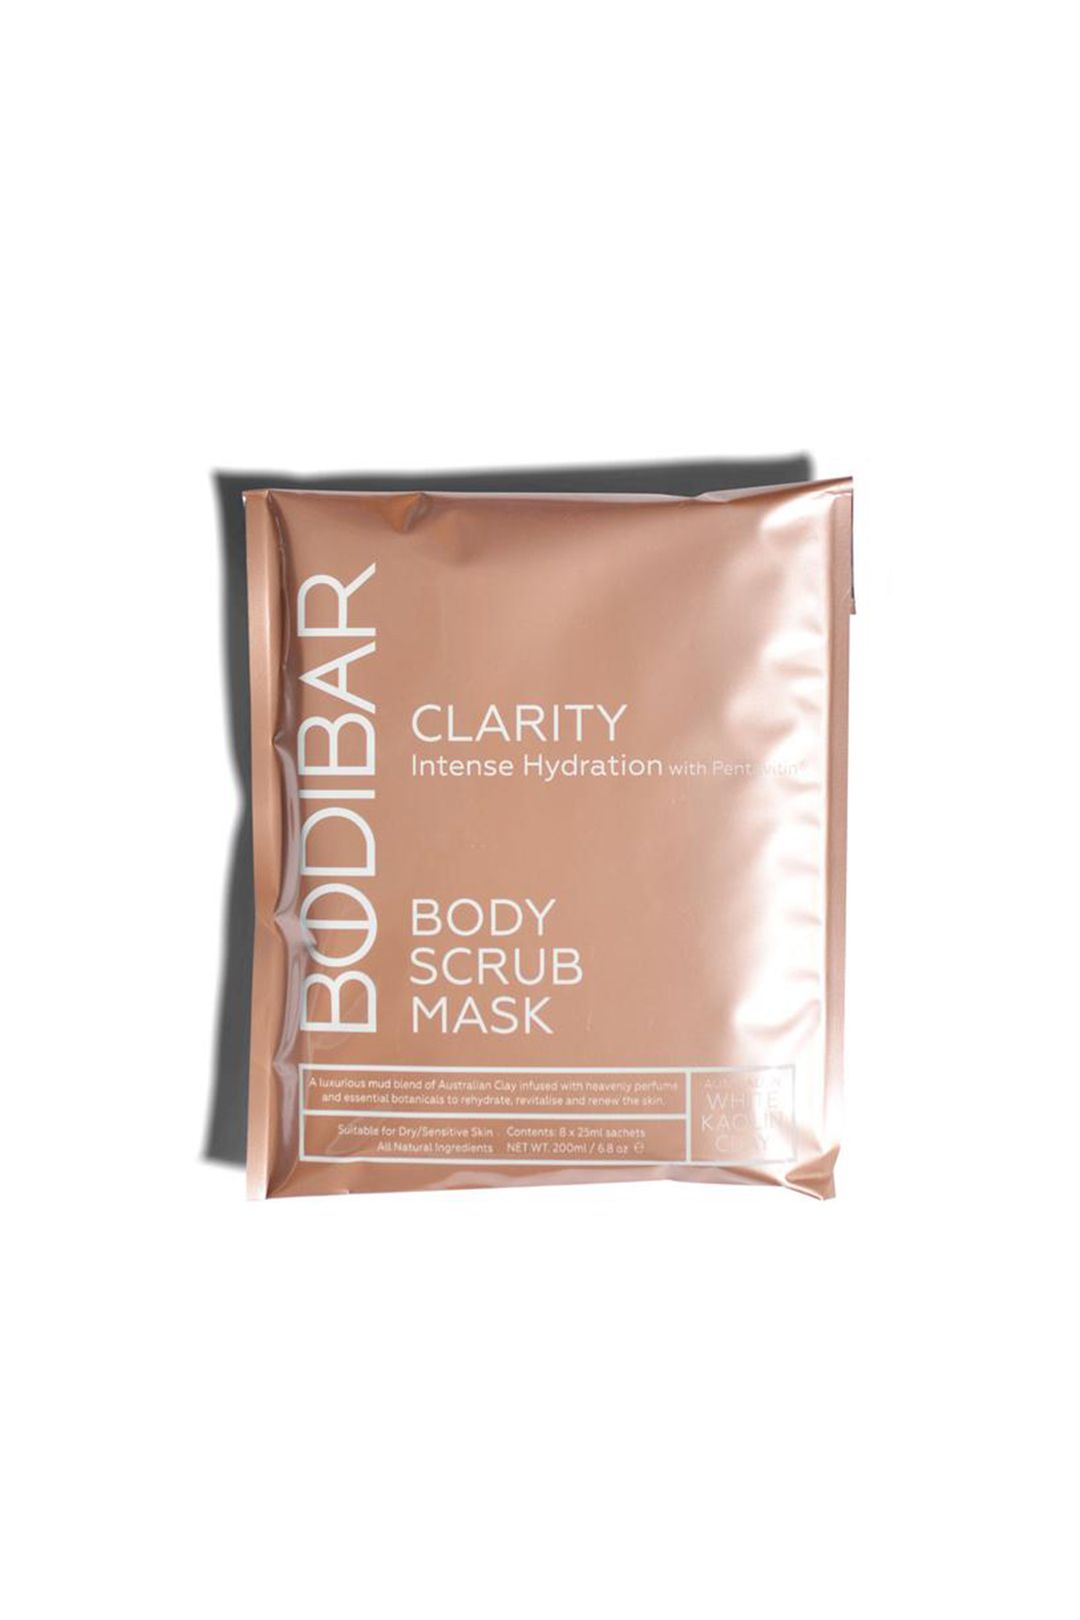 bodibar-body-scrub-mud-masks-clarity-intense-hydration-mud-body-treatment-product